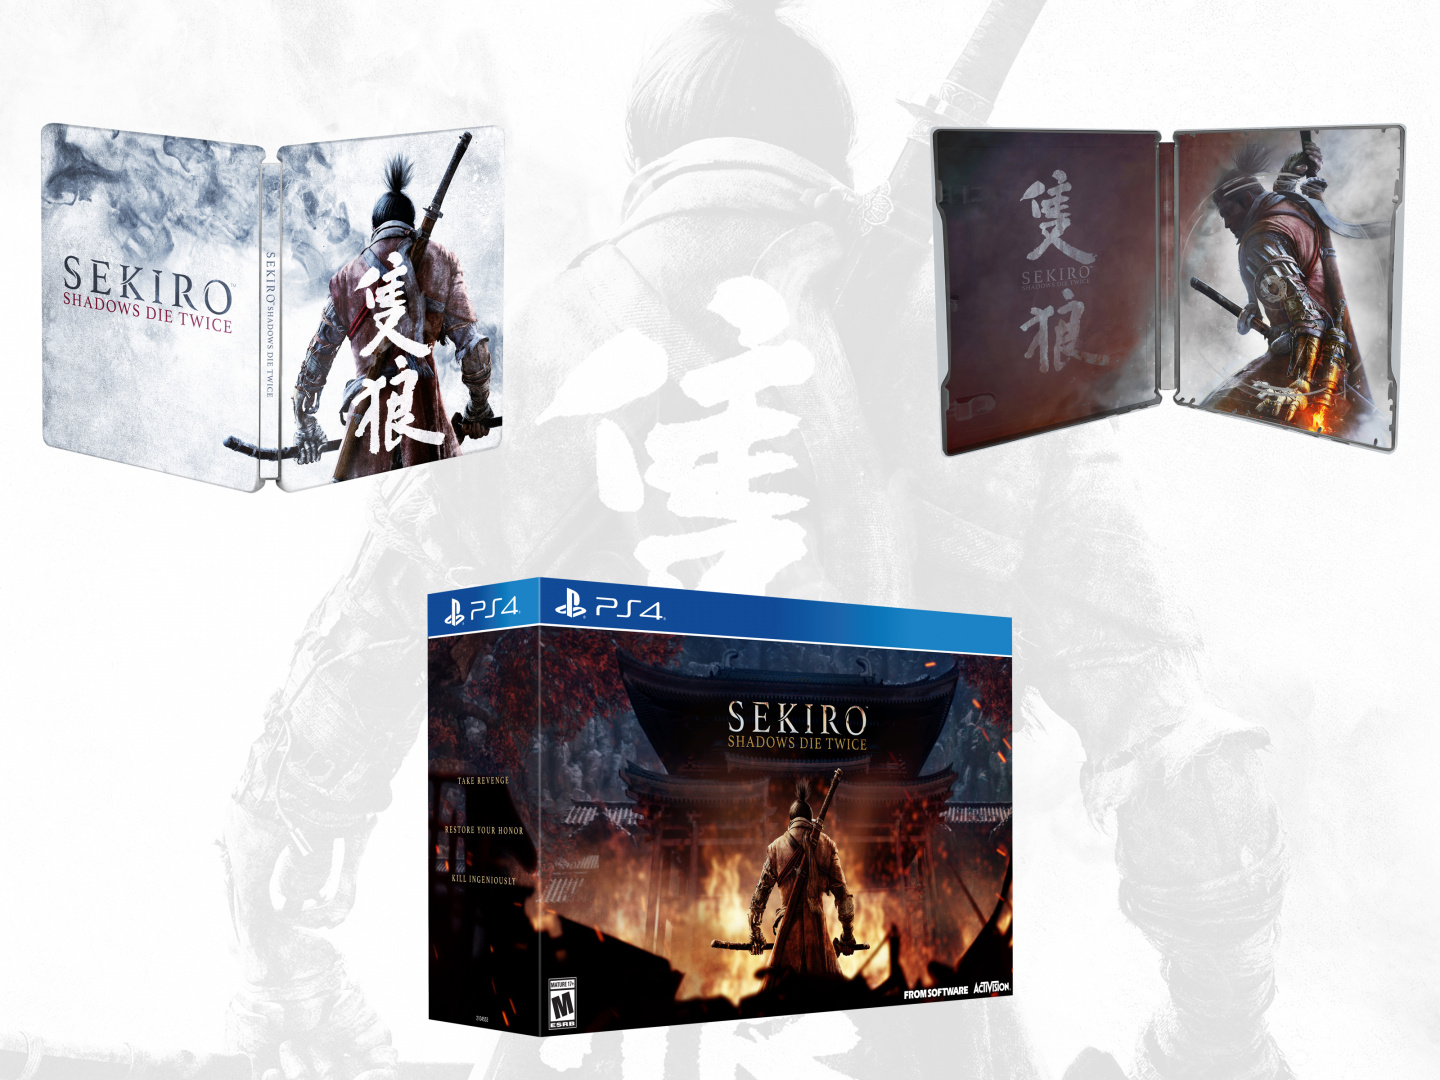 Sekiro: Shadows Die Twice- Packaging Thumbnail